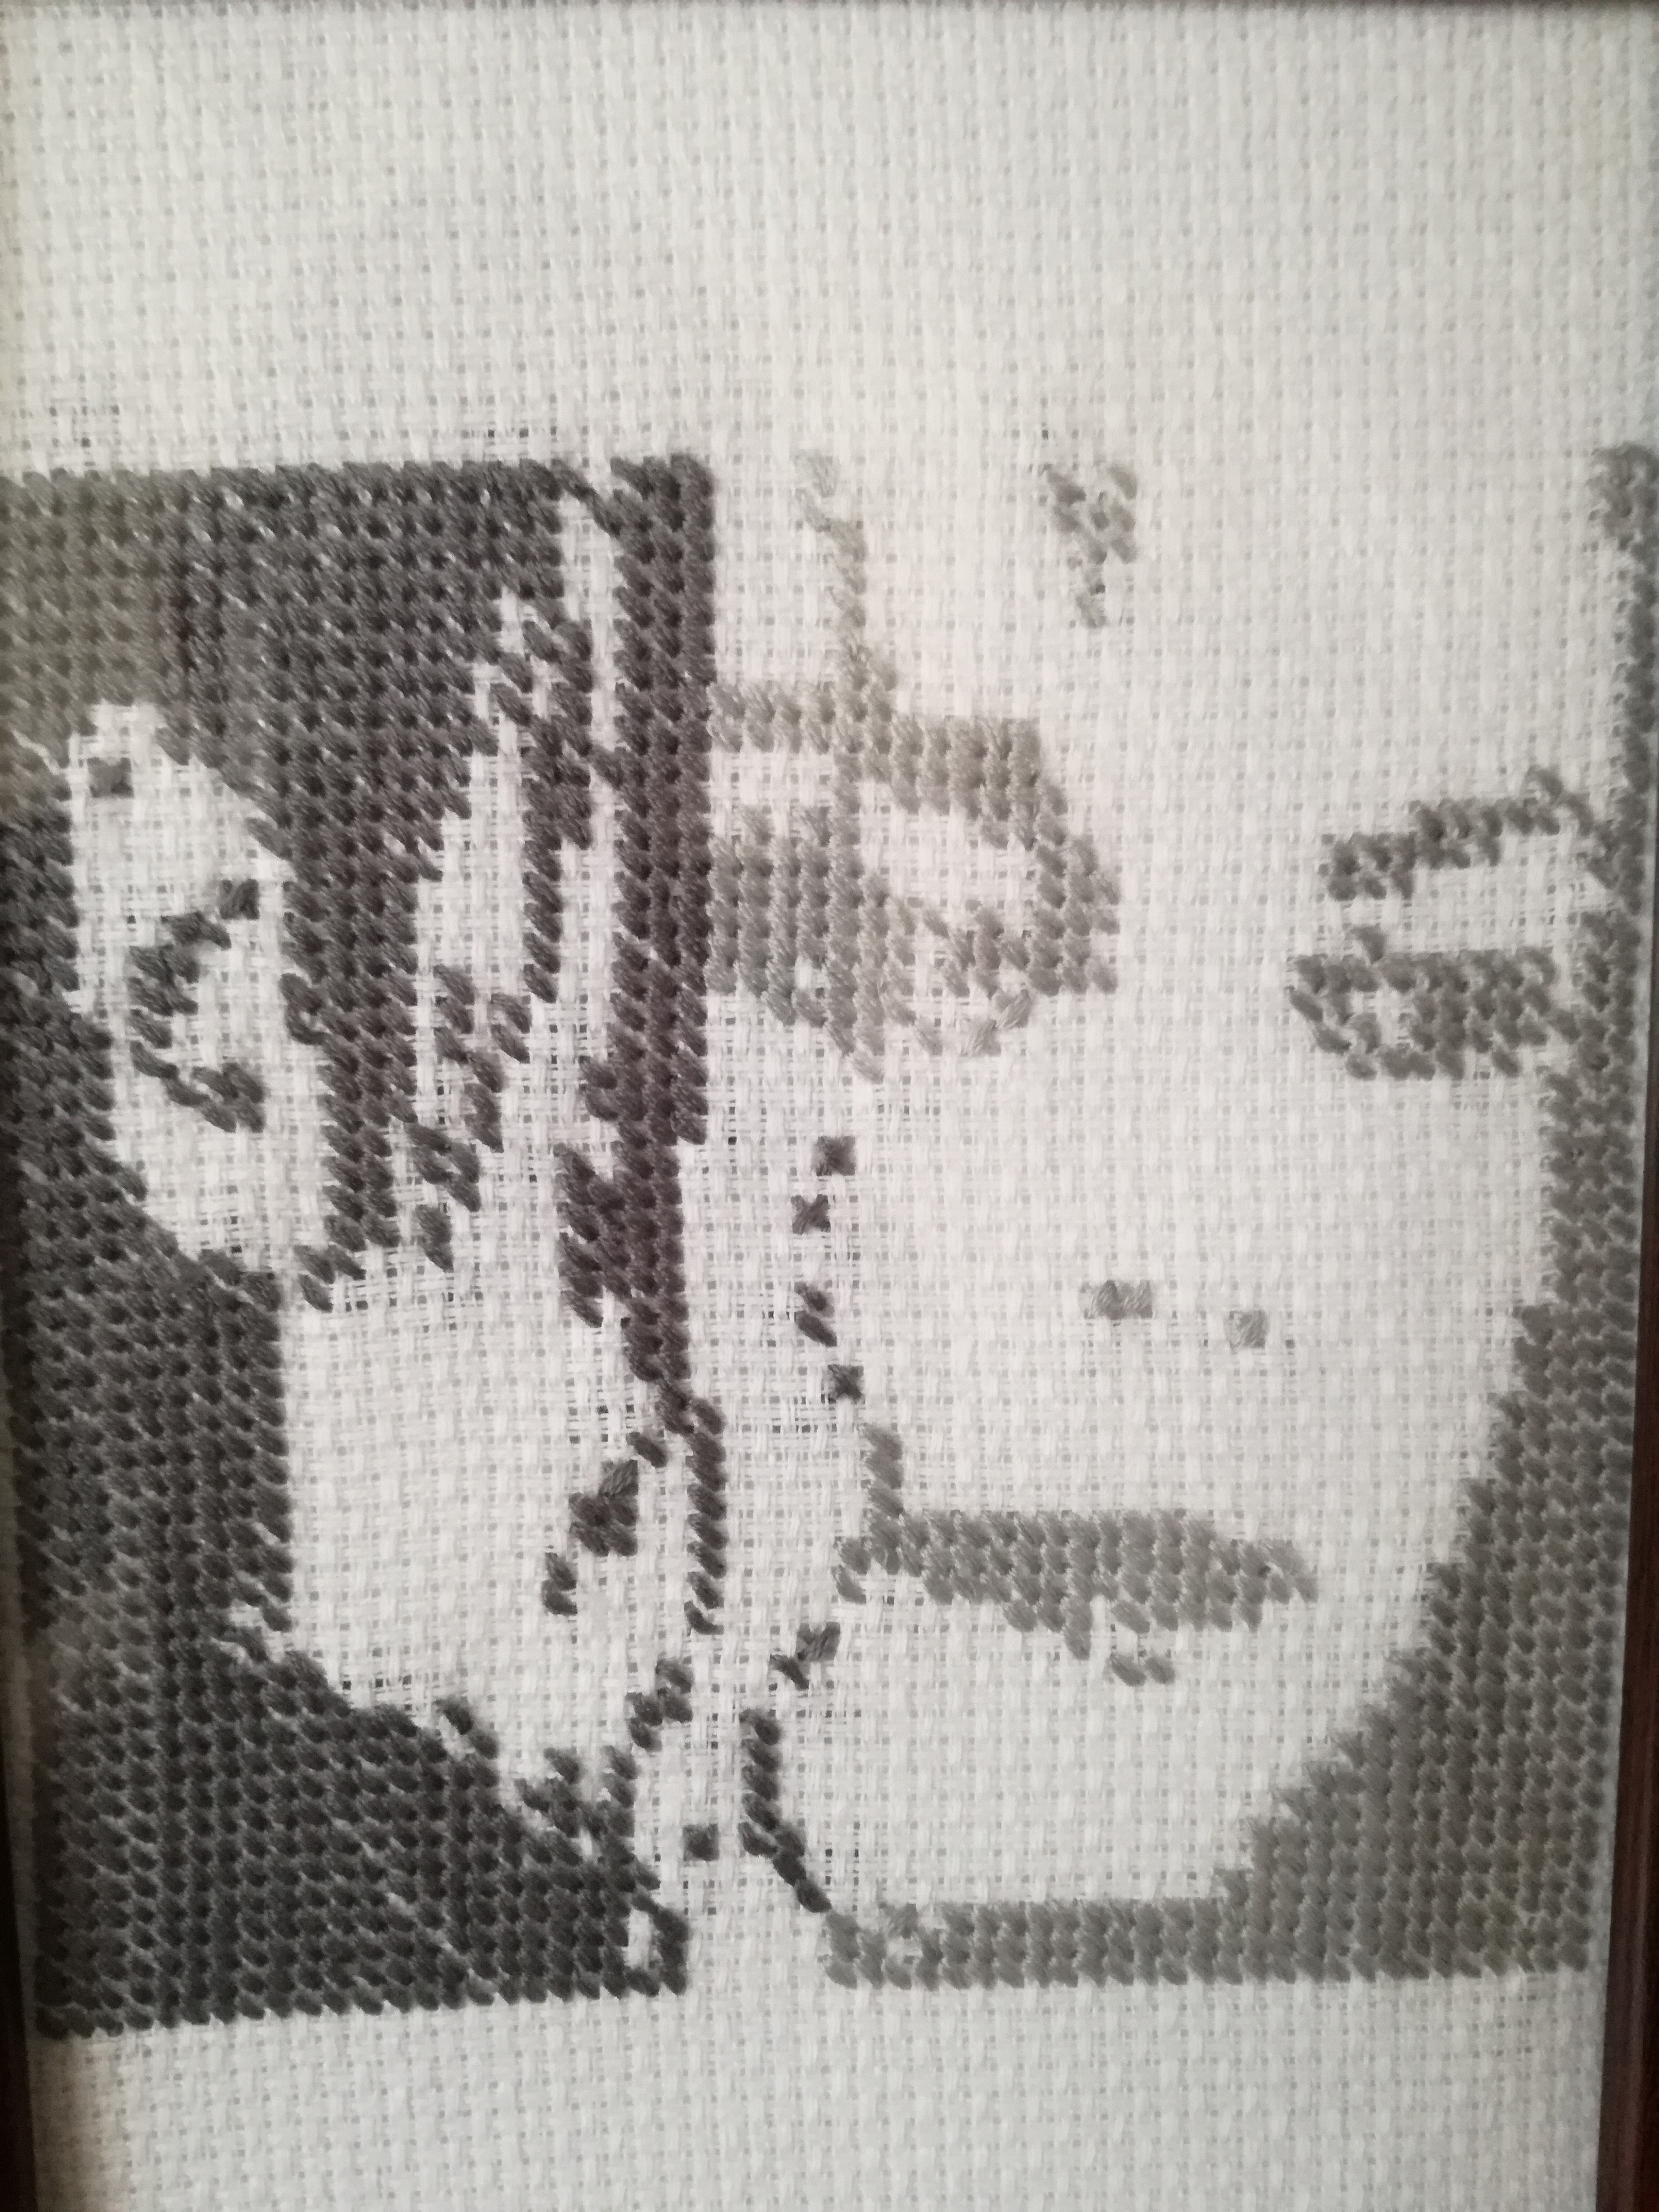 MJ face needlework